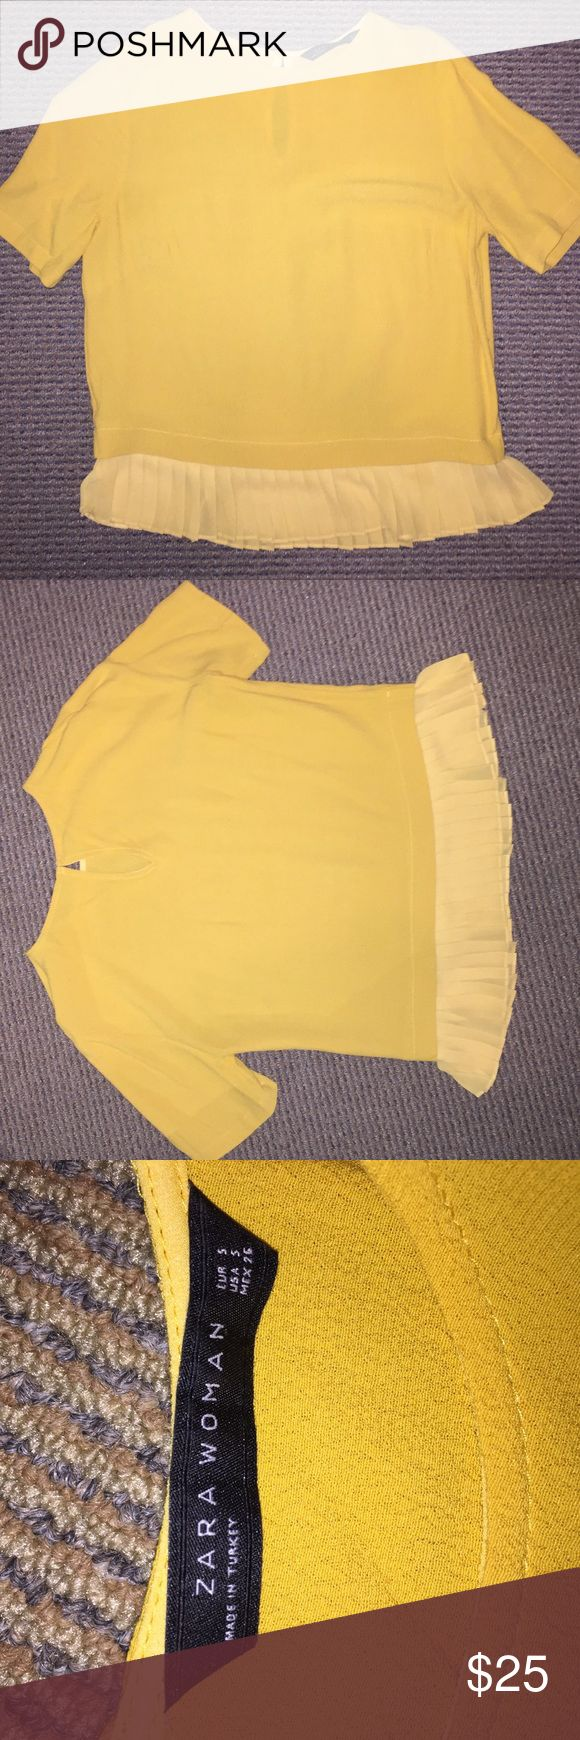 Zara top Canary yellow top, hits at the waist and buttons in the back Zara Tops Blouses